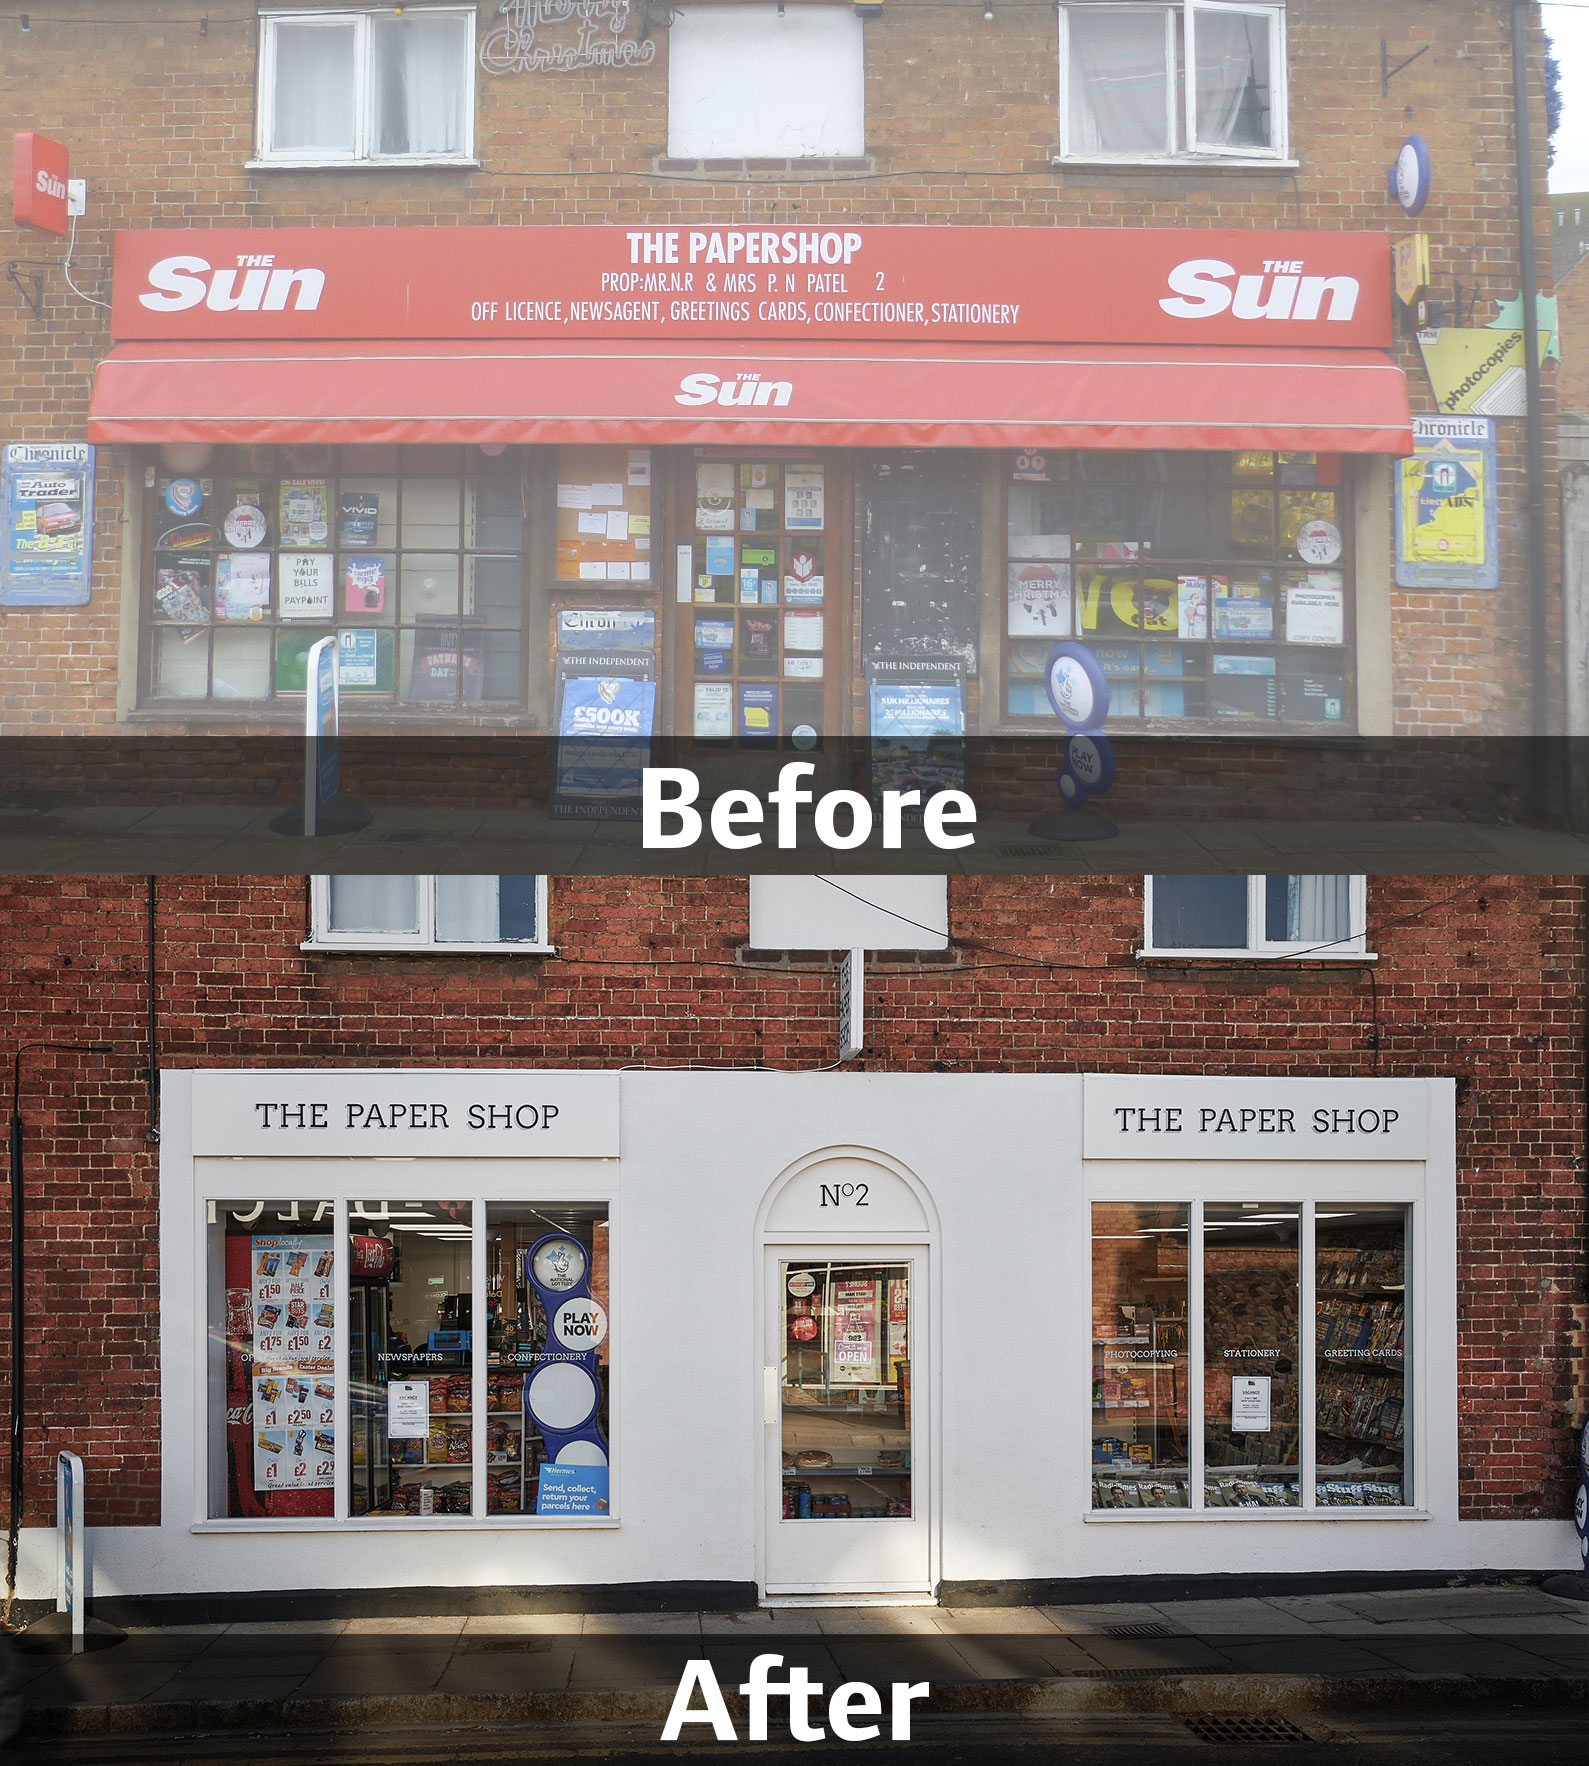 Shefford Paper Shop, before and after